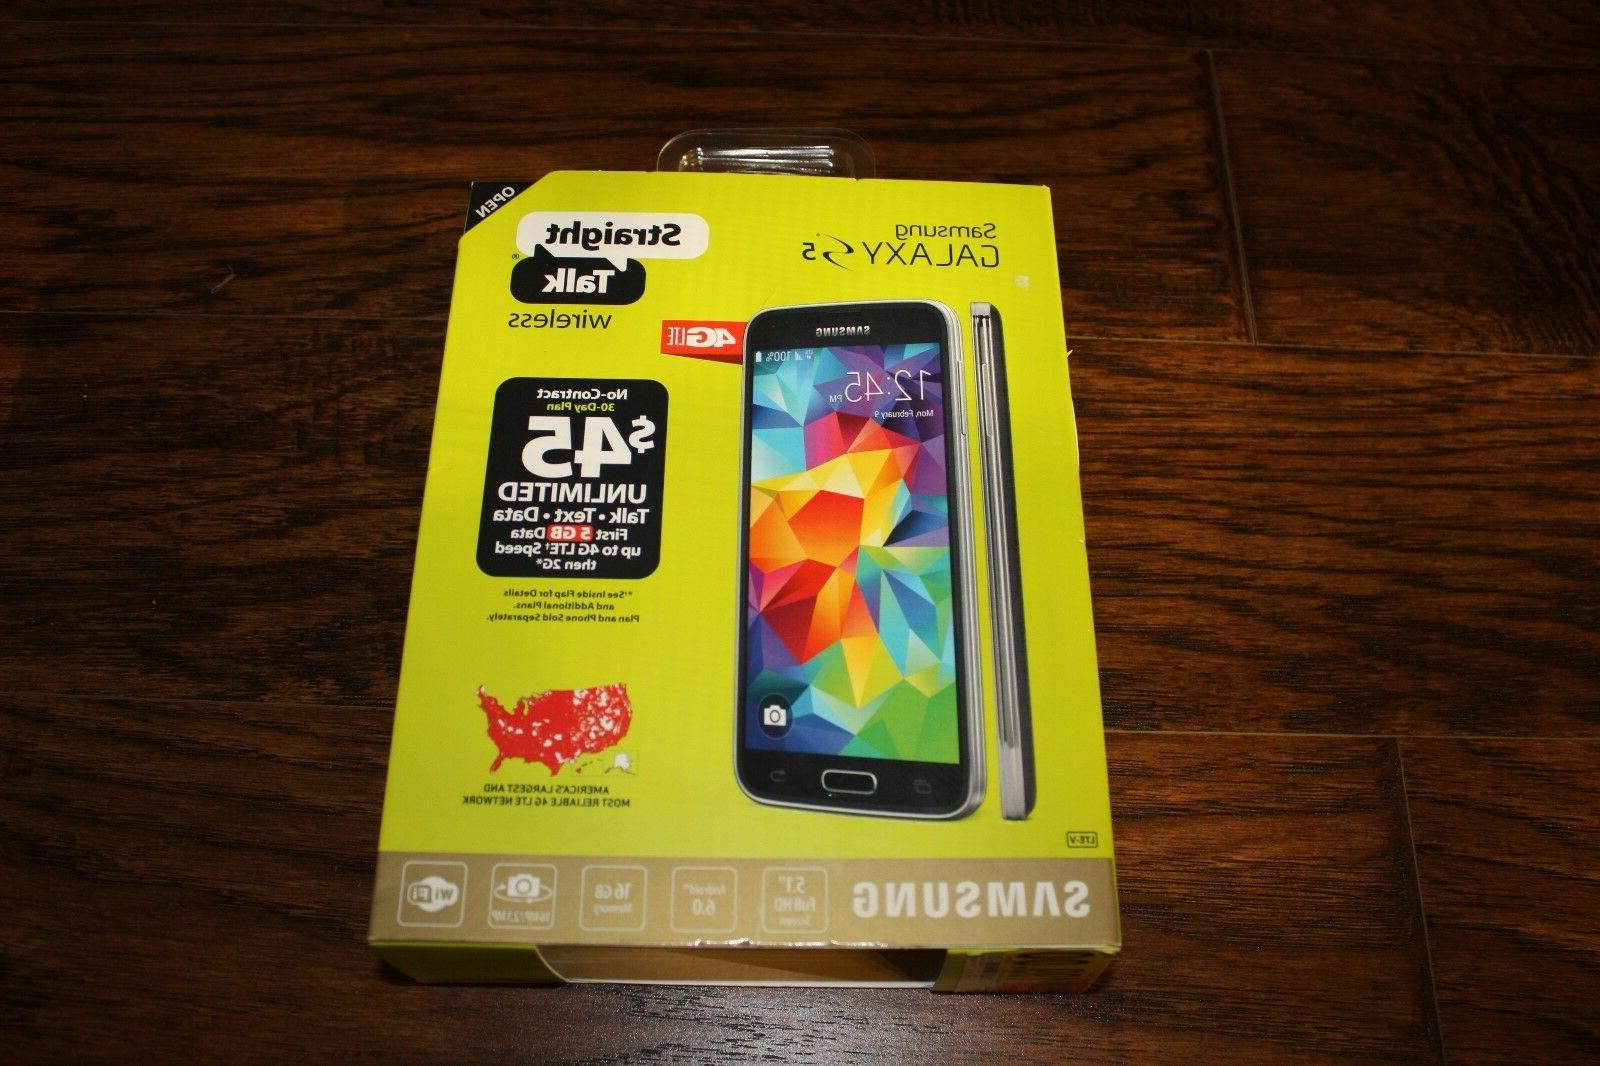 BRAND NEW Straight Talk Samsung Galaxy S5 Android 4G LTE Sma